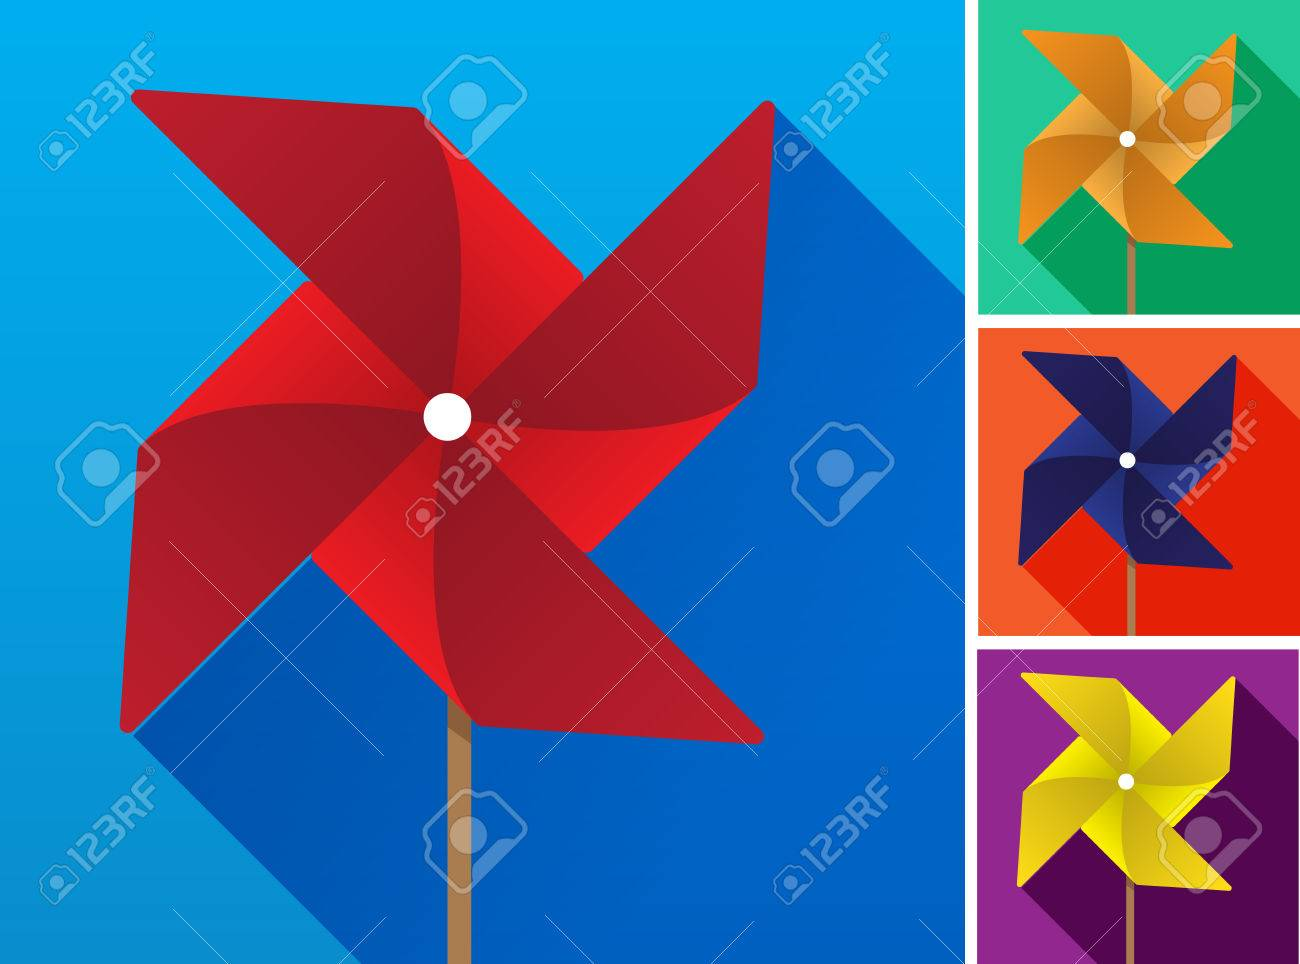 Multicolored Toy Paper Windmill Propeller Set On Backgrounds Of Different Colors Vector Illustration Stock